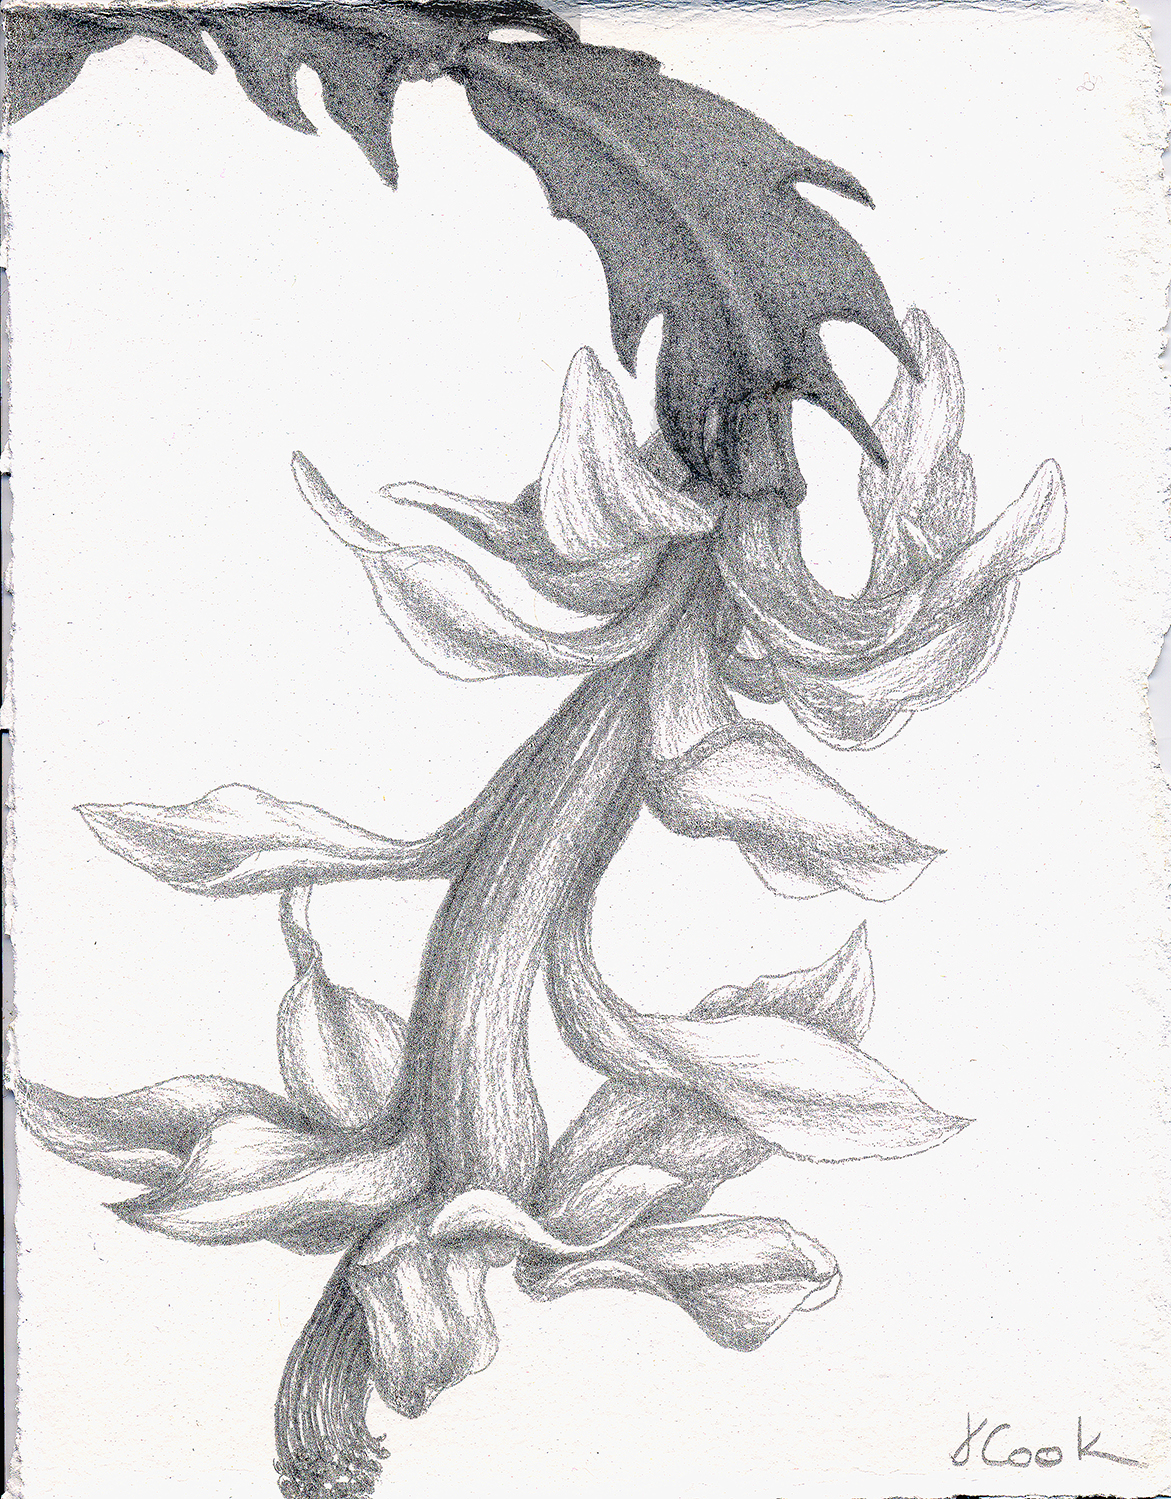 White Christmas Cactus, silverpoint, Jeannine Cook artist